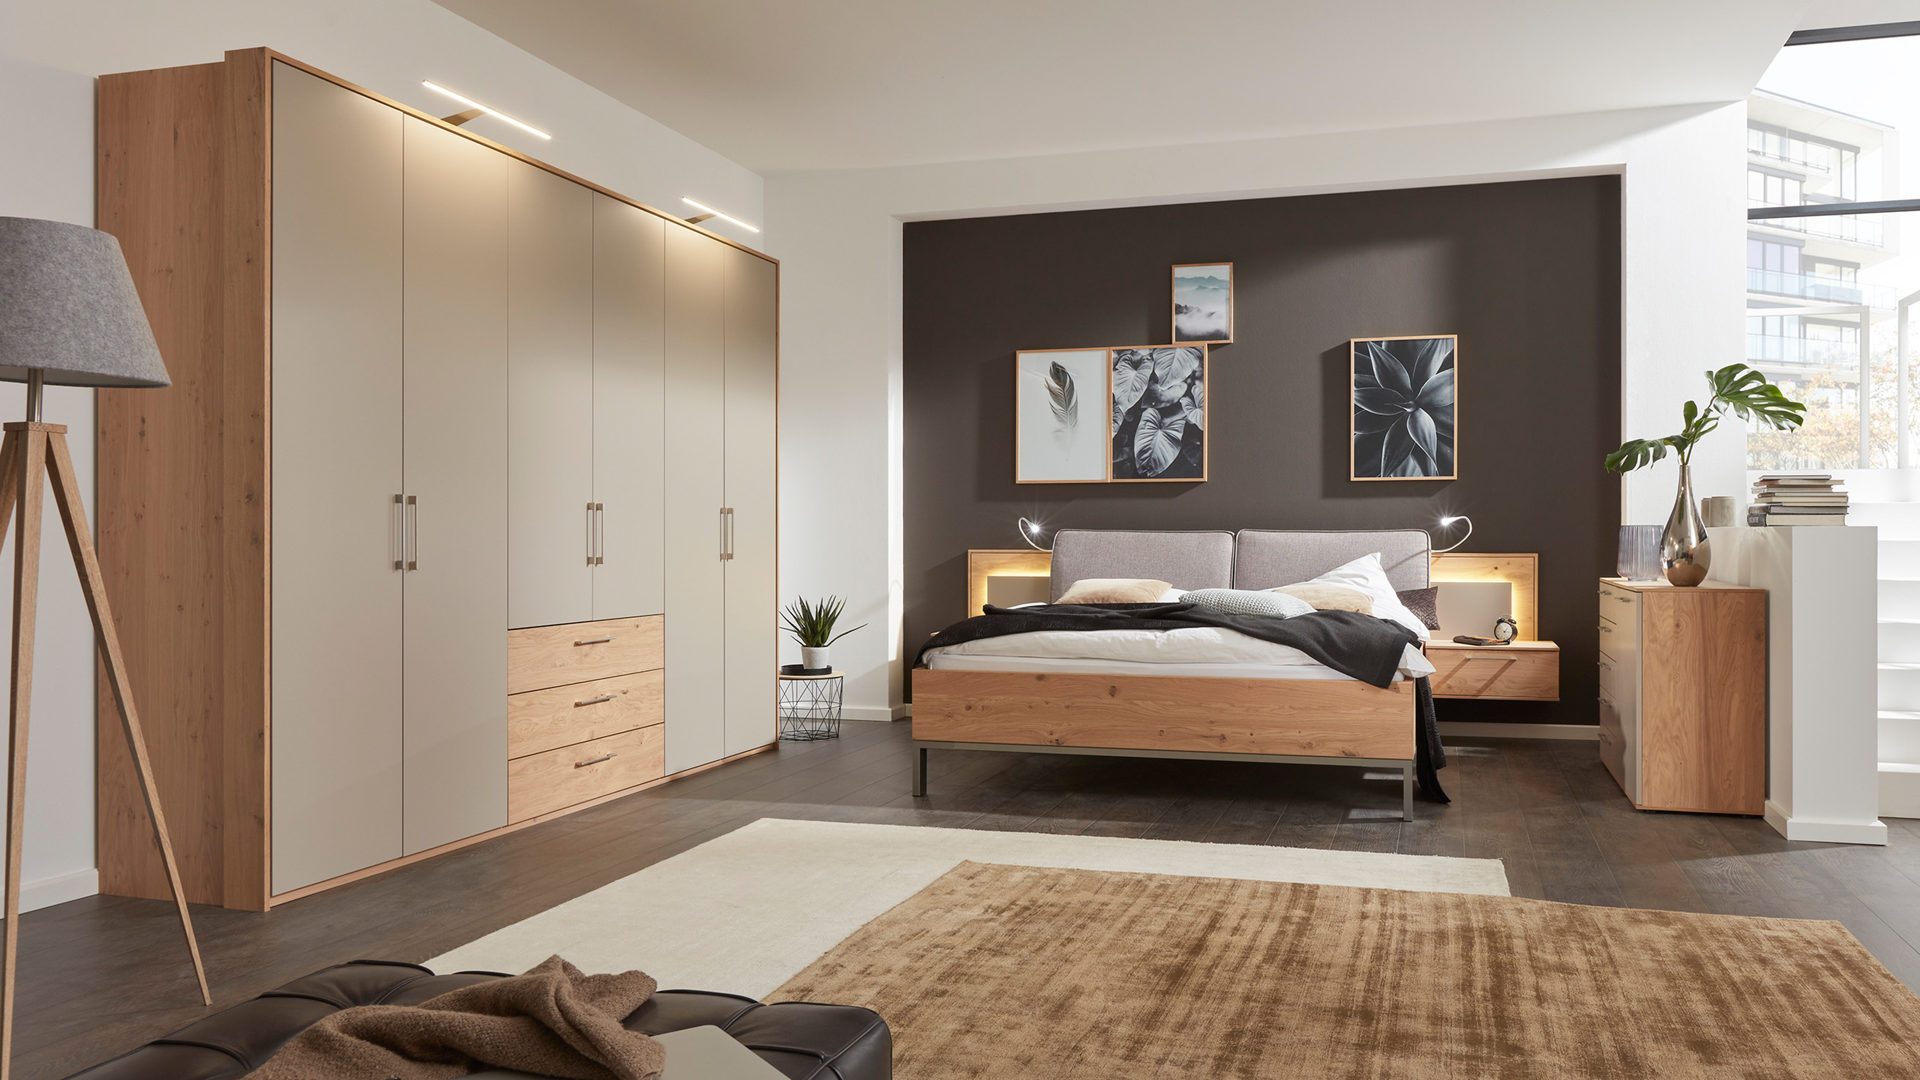 Farbe Schlafzimmer Holz Taupe Farbe Schlafzimmer